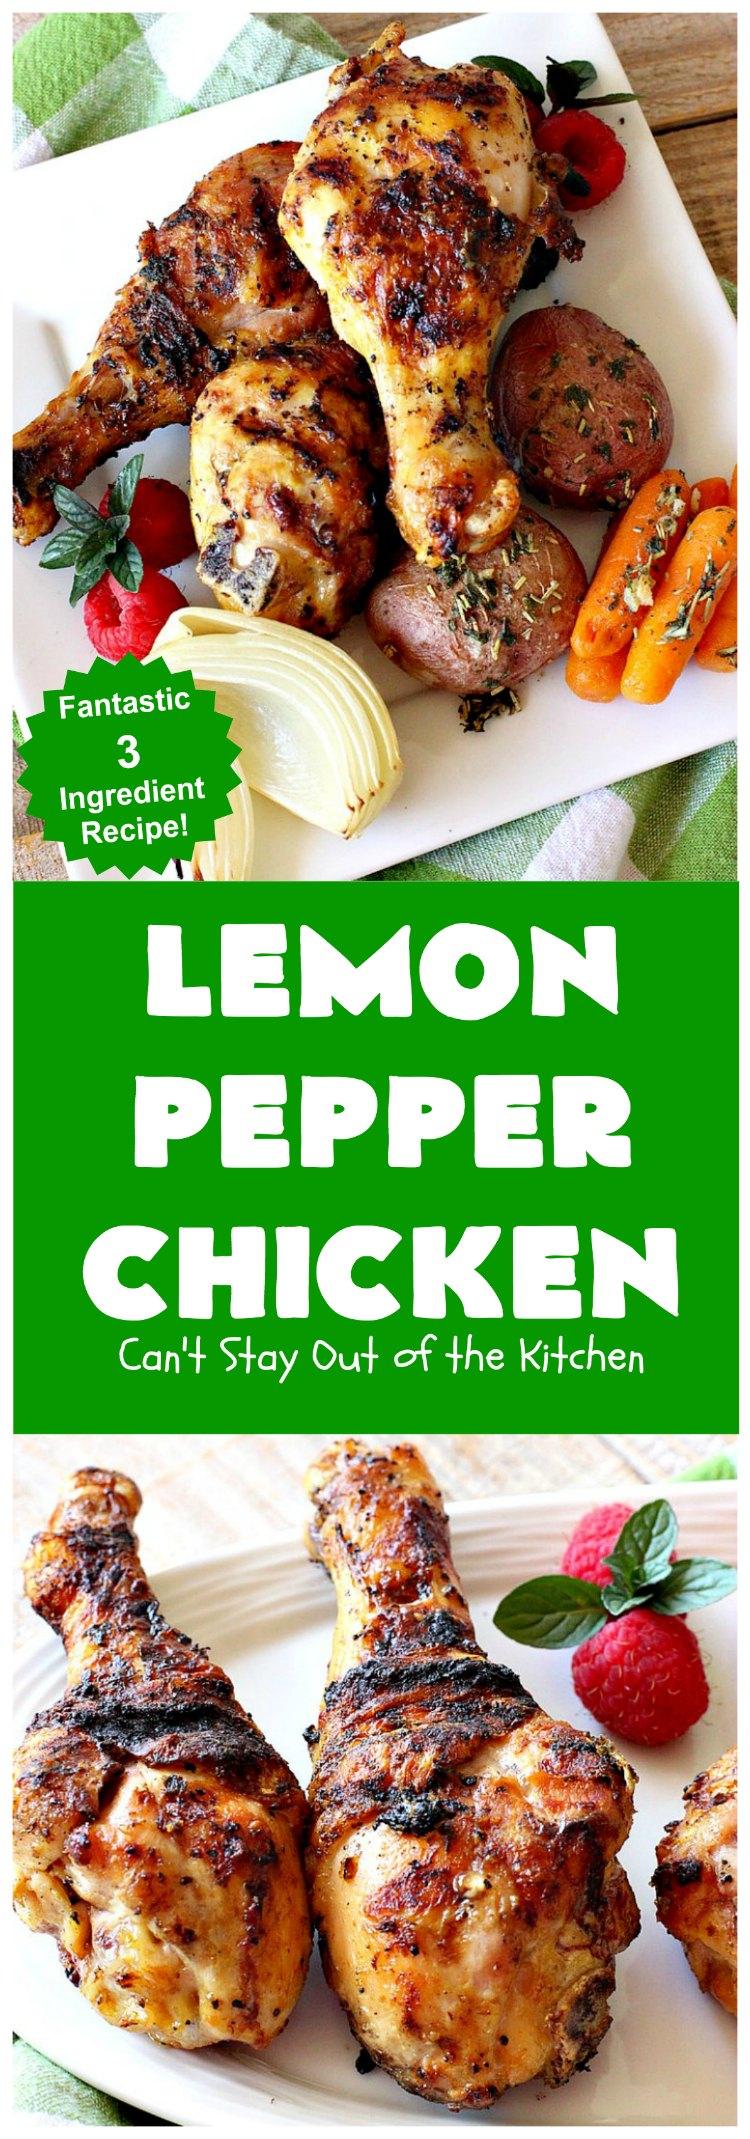 Lemon Pepper Chicken | Can't Stay Out of the Kitchen | fantastic 3 ingredient #GrilledChicken #recipe that's perfect for #tailgating parties or weeknight dinners when you're short on time. #chicken #GlutenFree #LemonPepperChicken